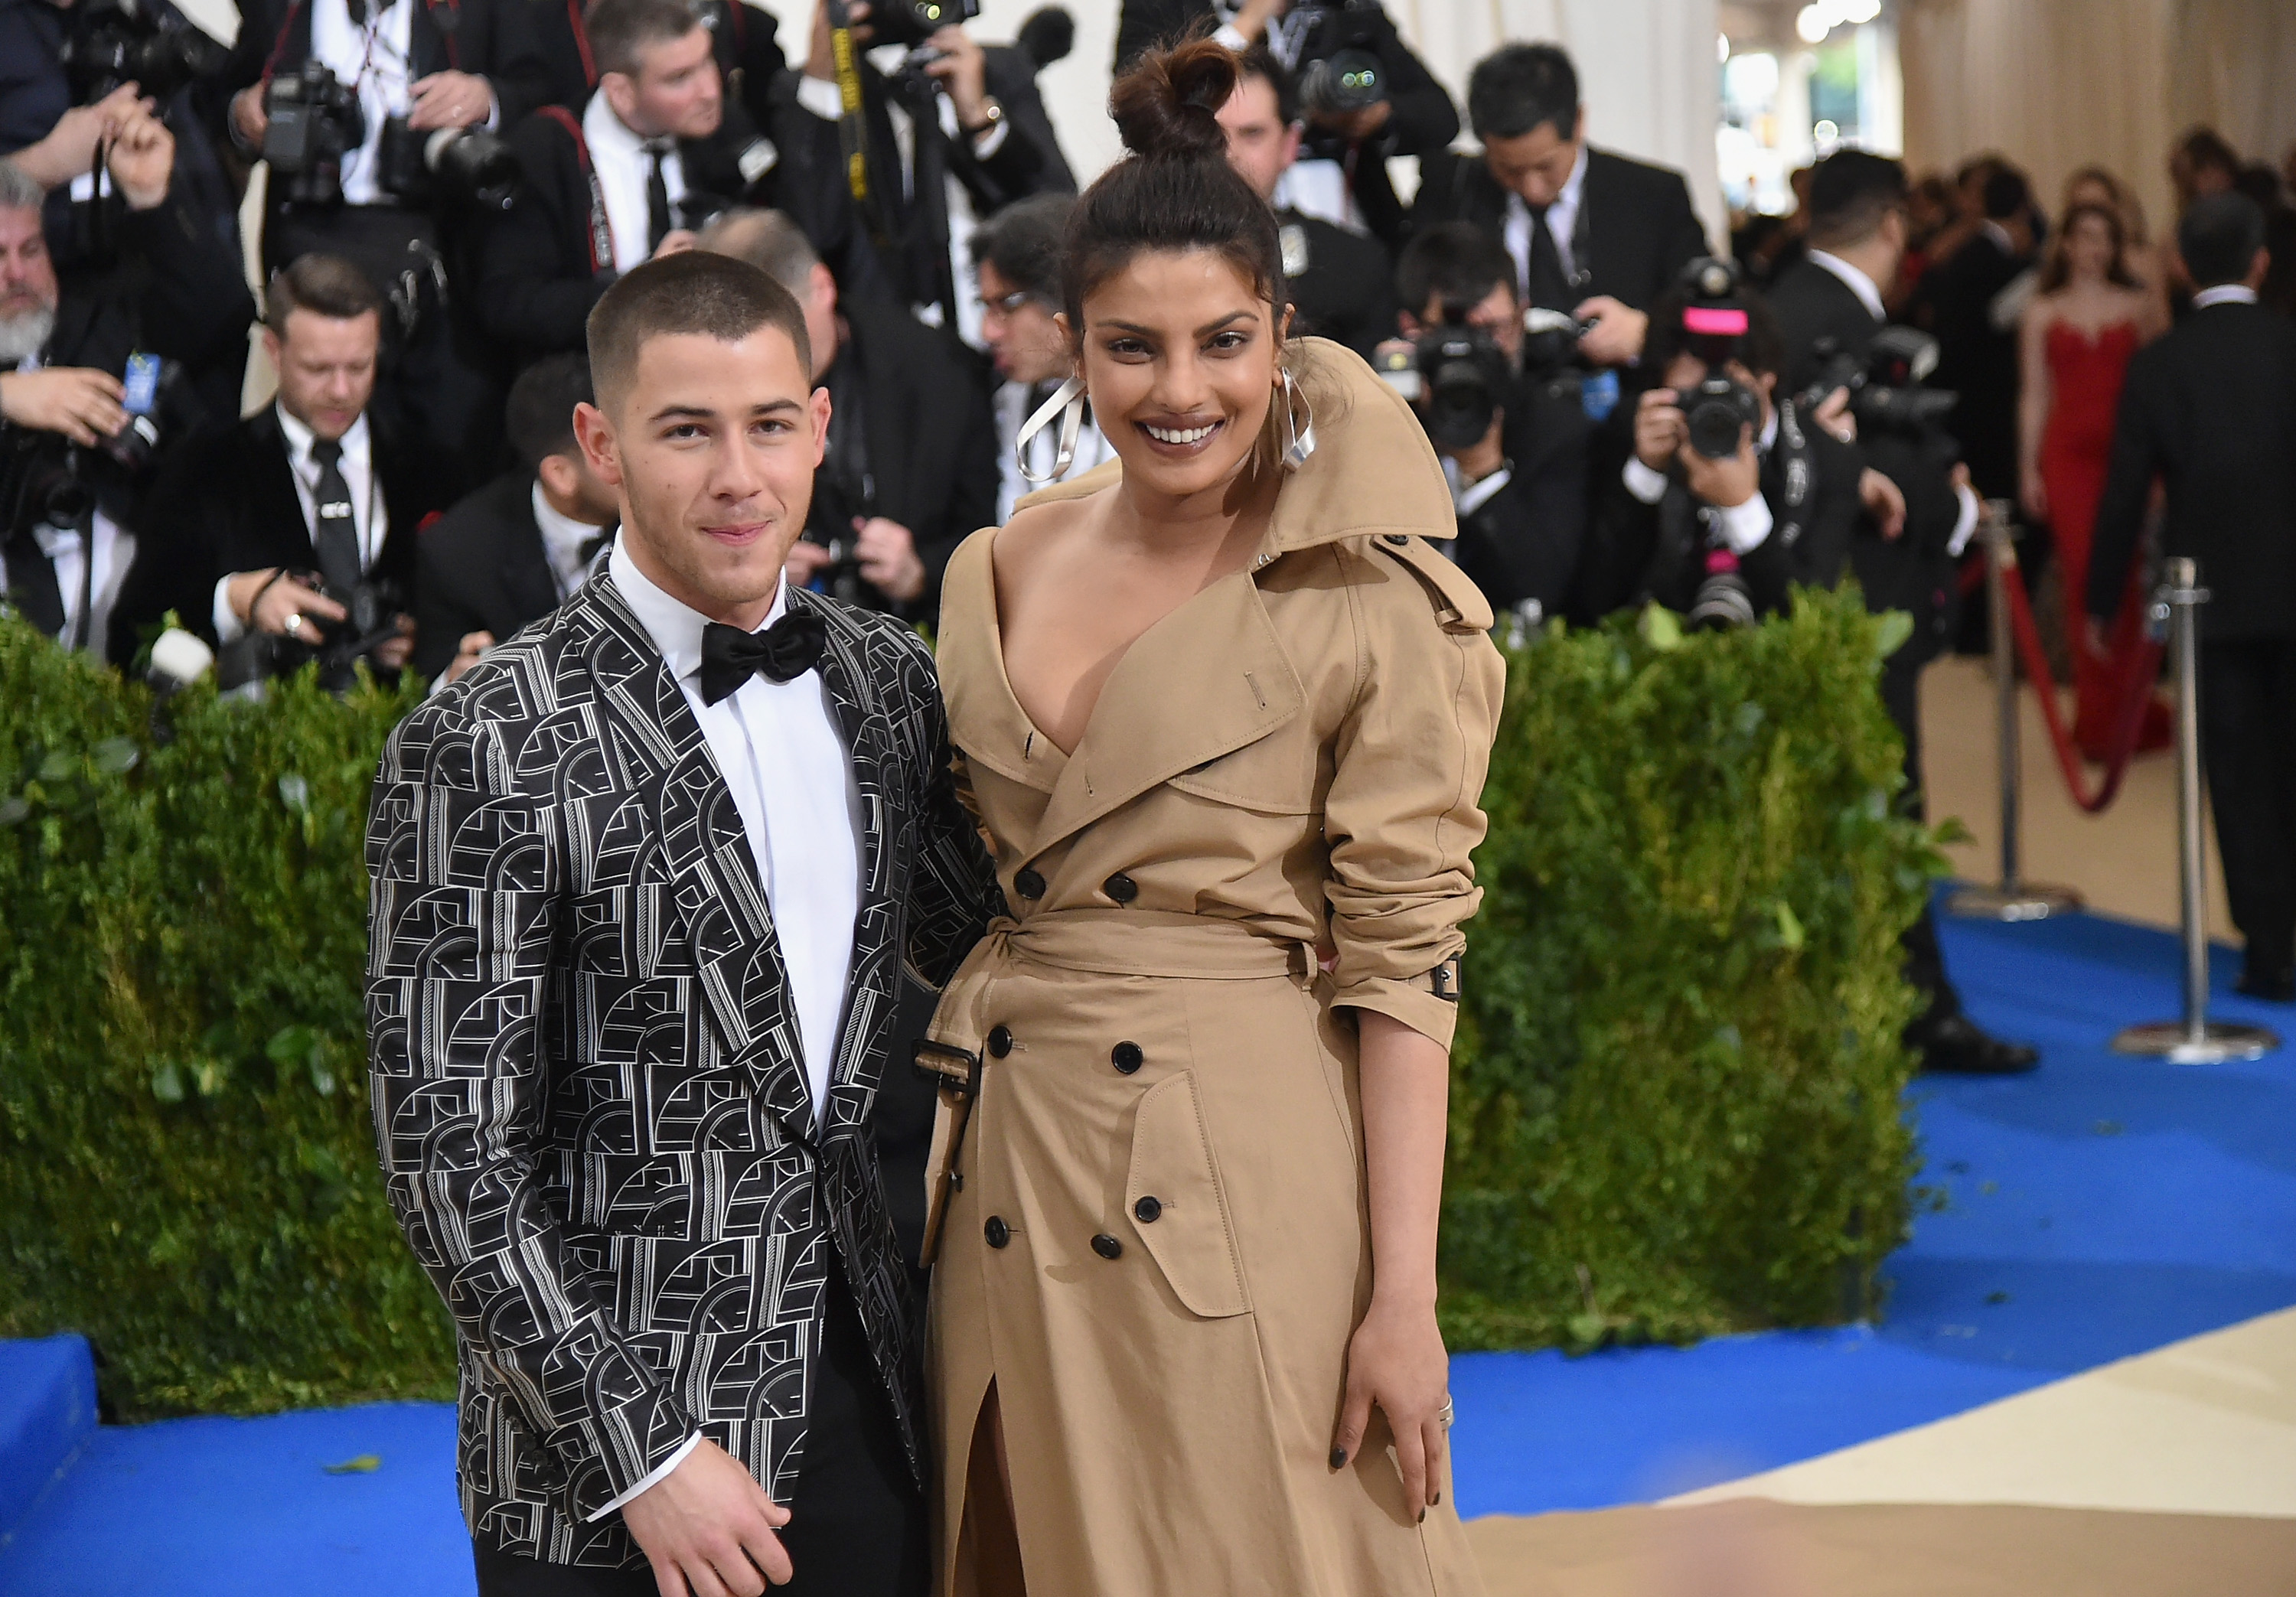 Priyanka Chopra and Nick Jonas Are Reportedly Engaged After 2 Months of Dating